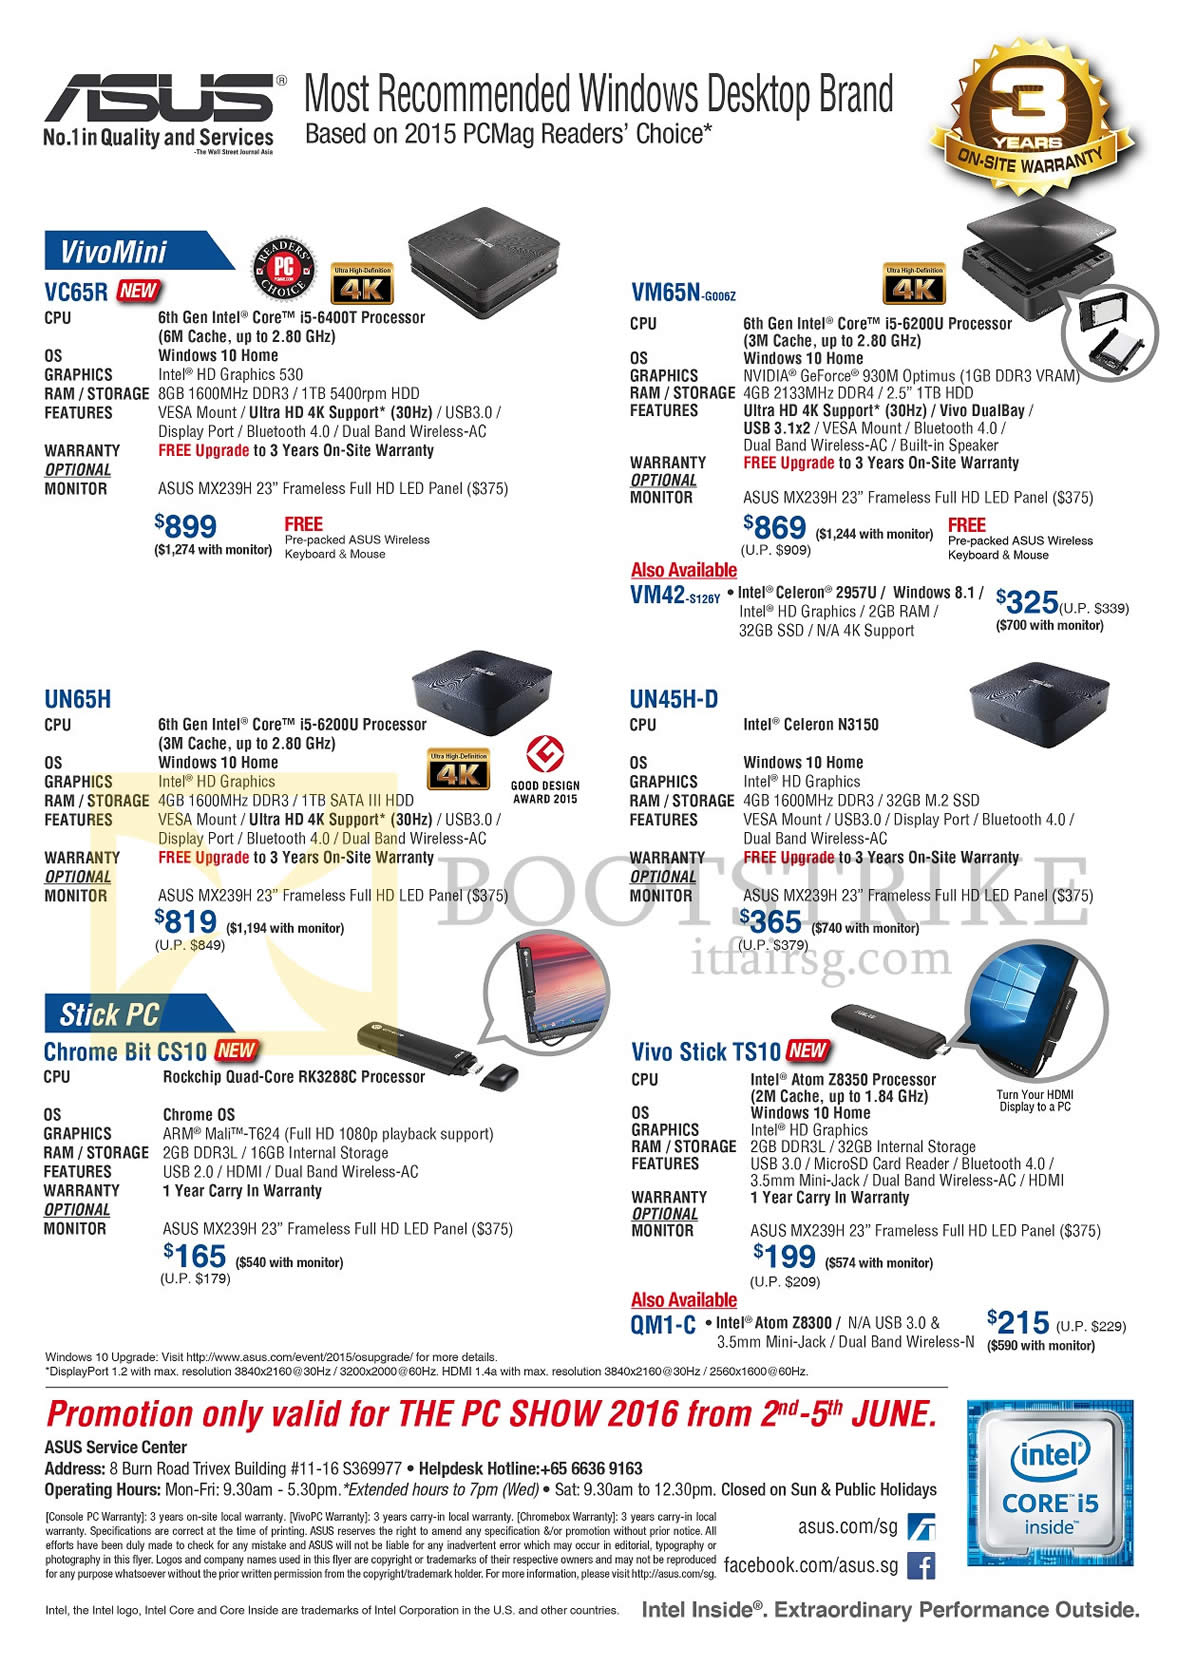 PC SHOW 2016 price list image brochure of ASUS PC Mini VivoMini VC65R, VM65N G006Z, UN65H, UN45H-D, Stick PCs Chrome Bit CS10, Vivo Stick TS10